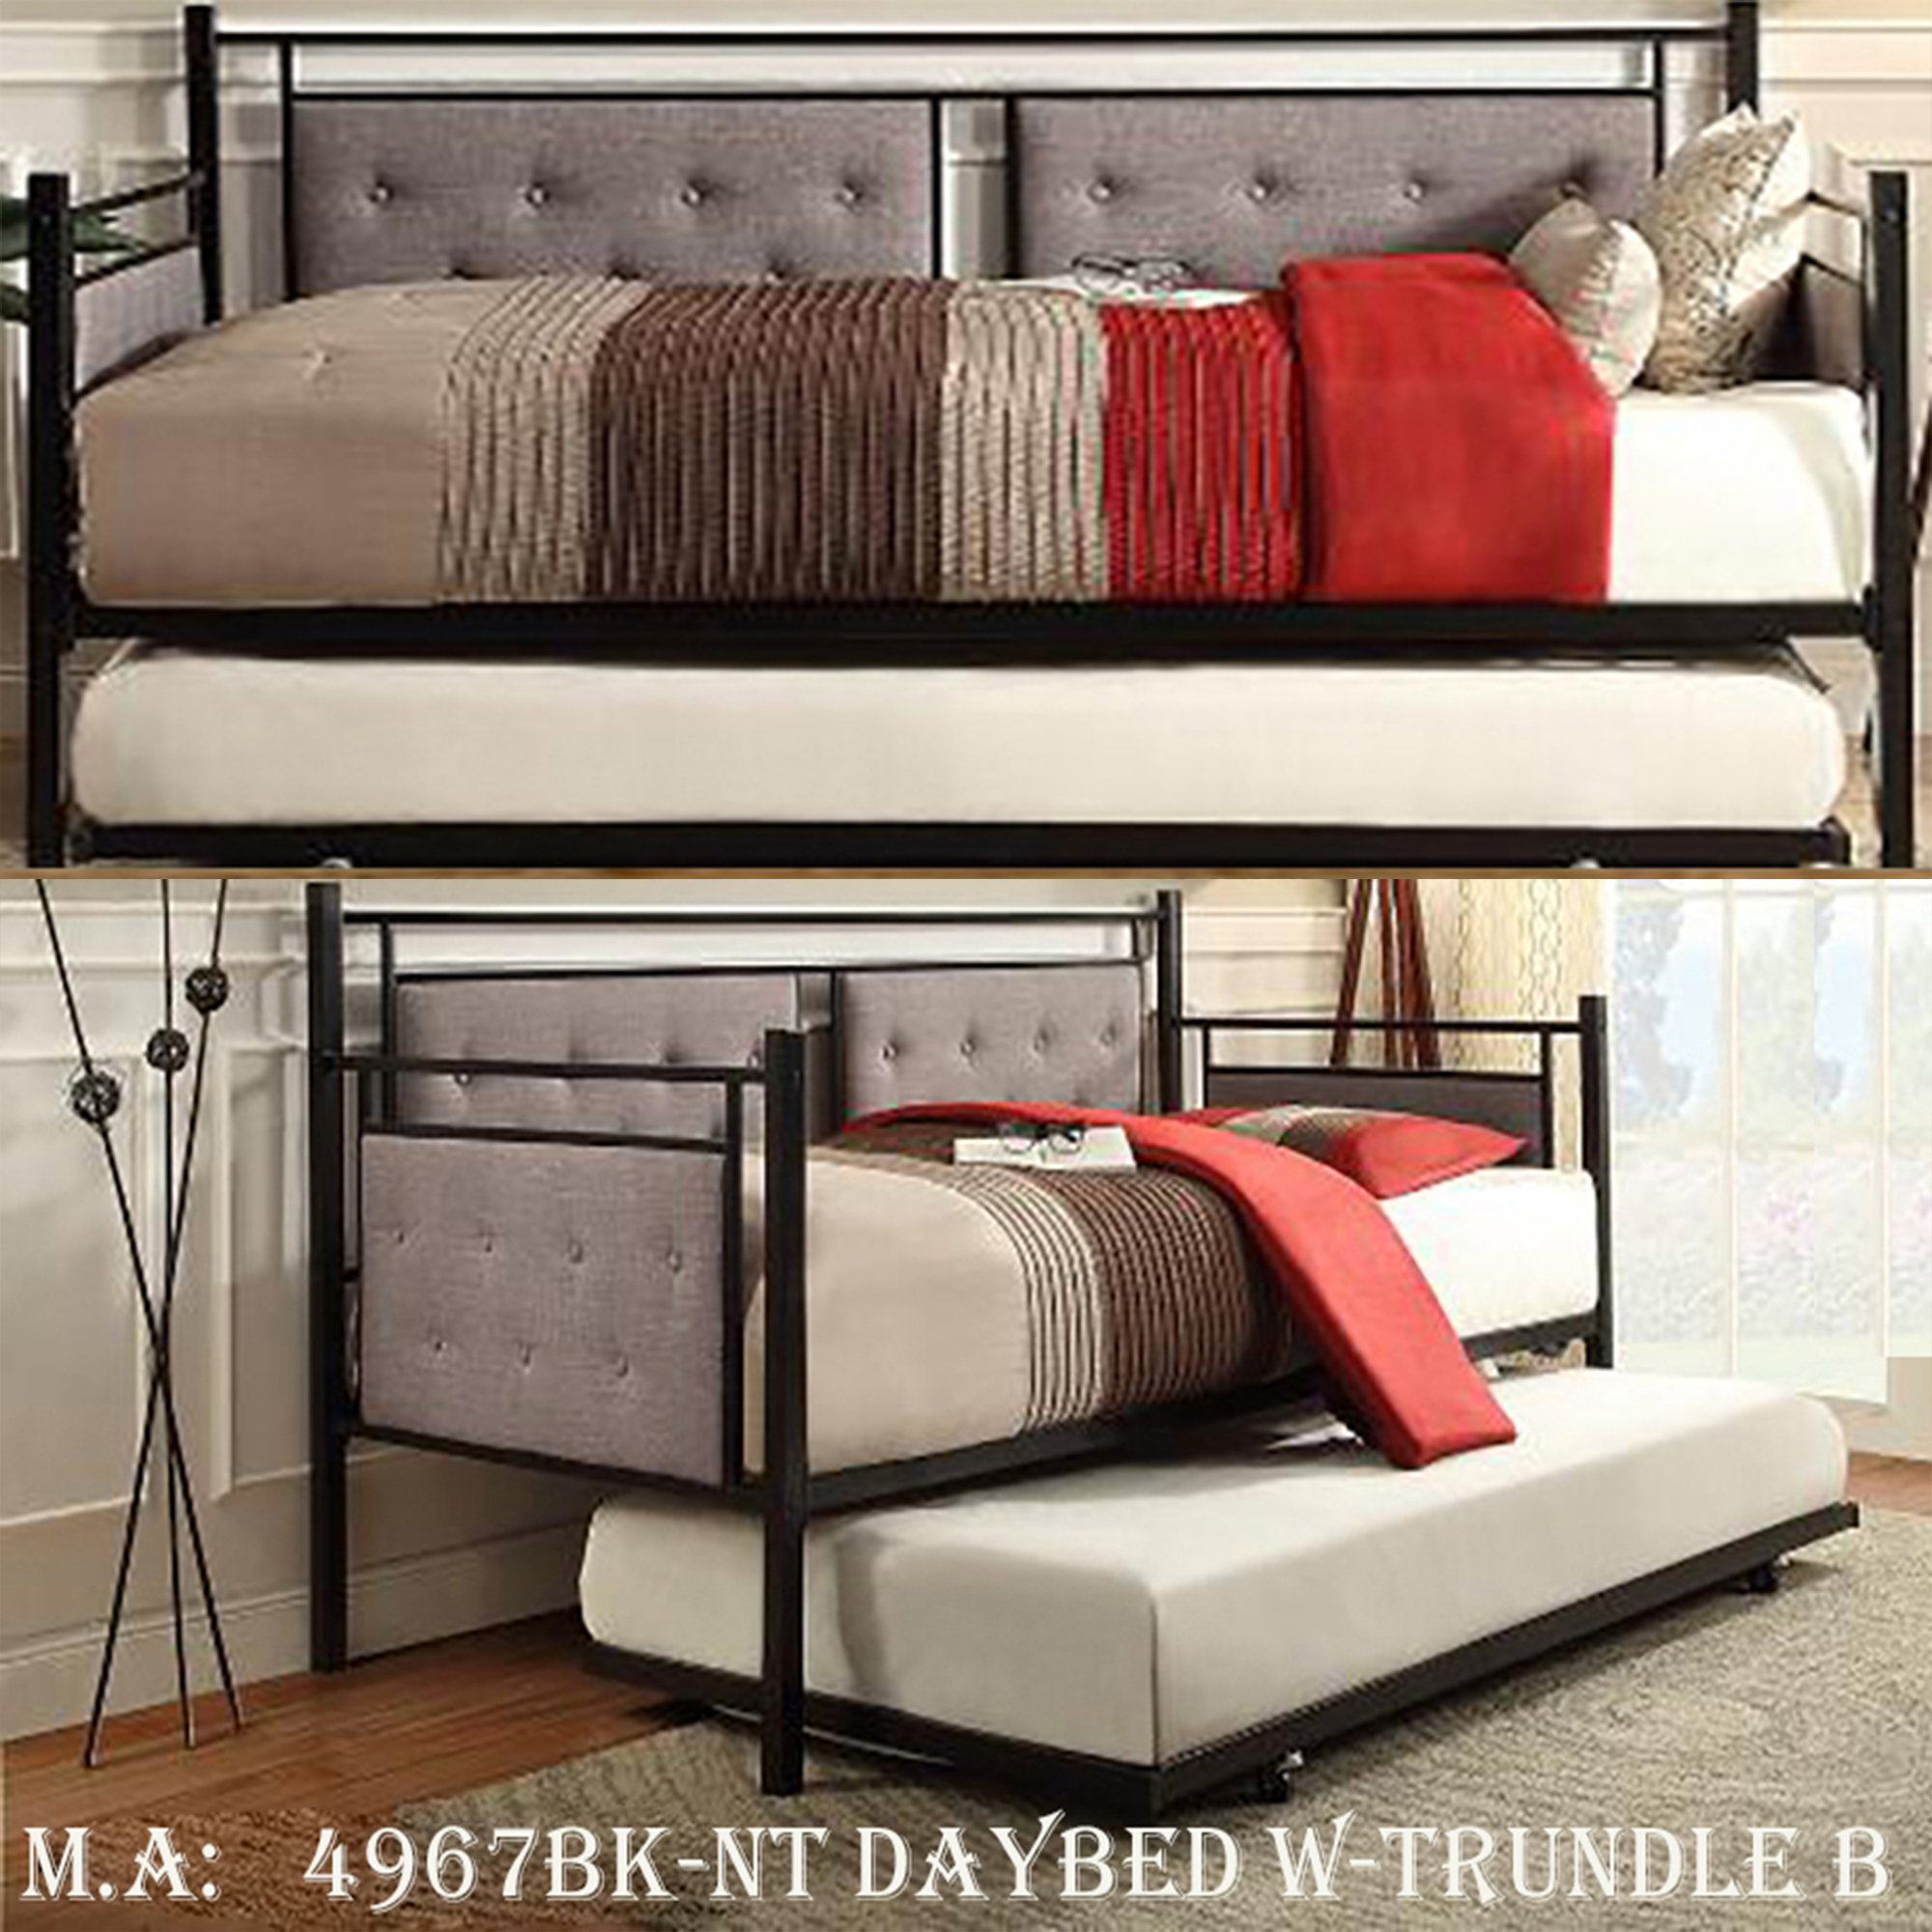 2-4967BK-NT daybed w-trundle b